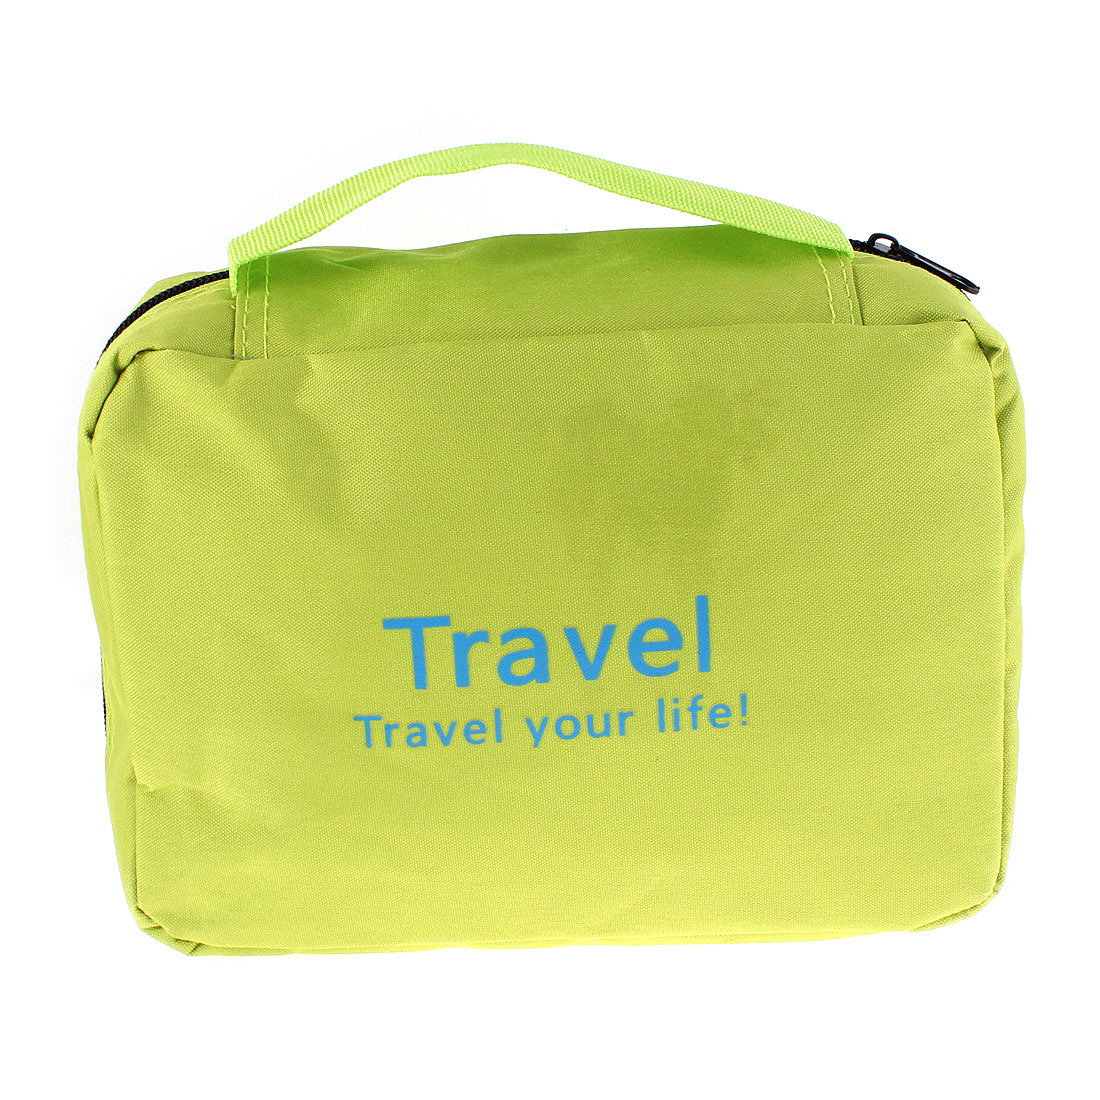 Multifunction Travel Cosmetic Bag Makeup Pouch Toiletry Case Green